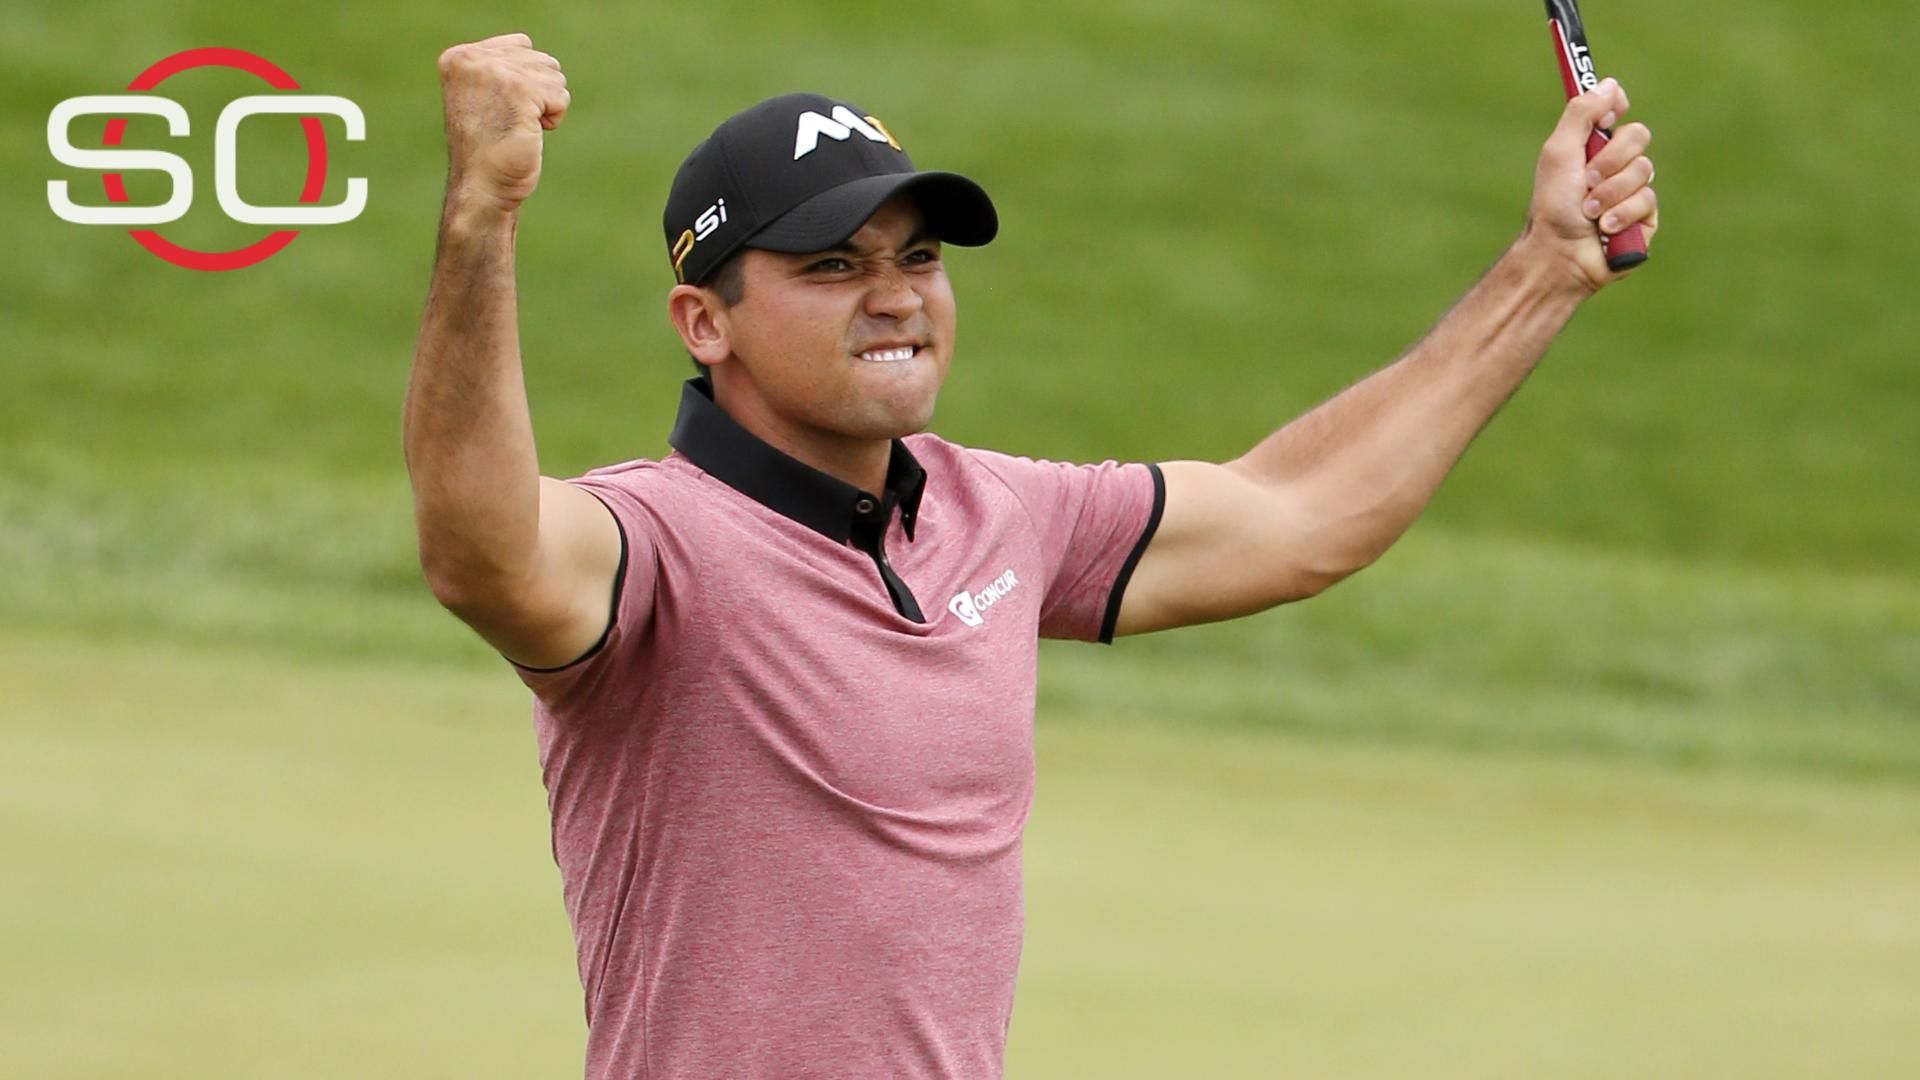 Day matches PGA Tour's 36-hole record low